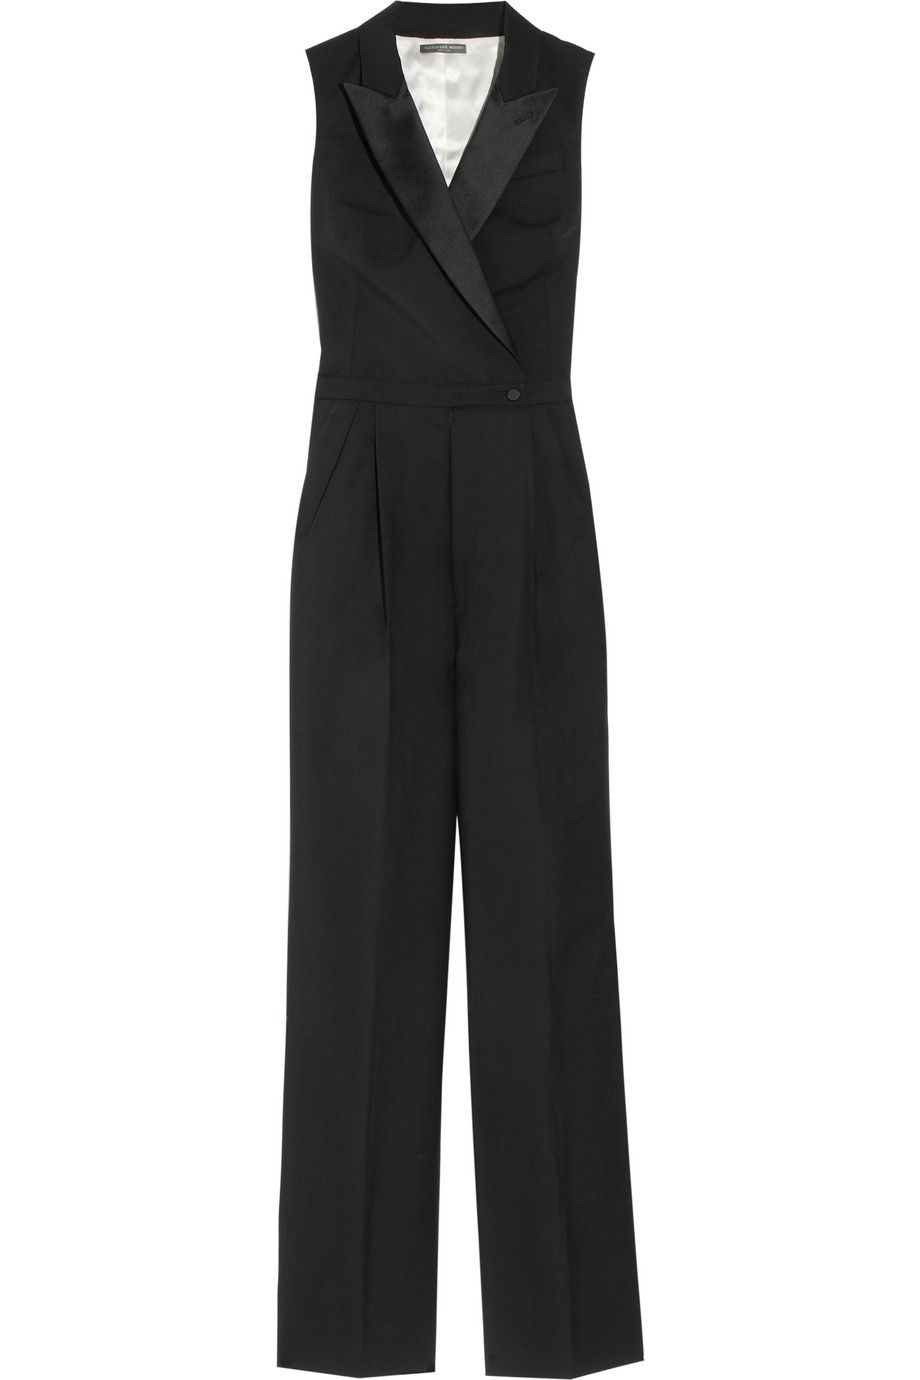 29f8e803bee Tuxedo Style Jumpsuit for Women